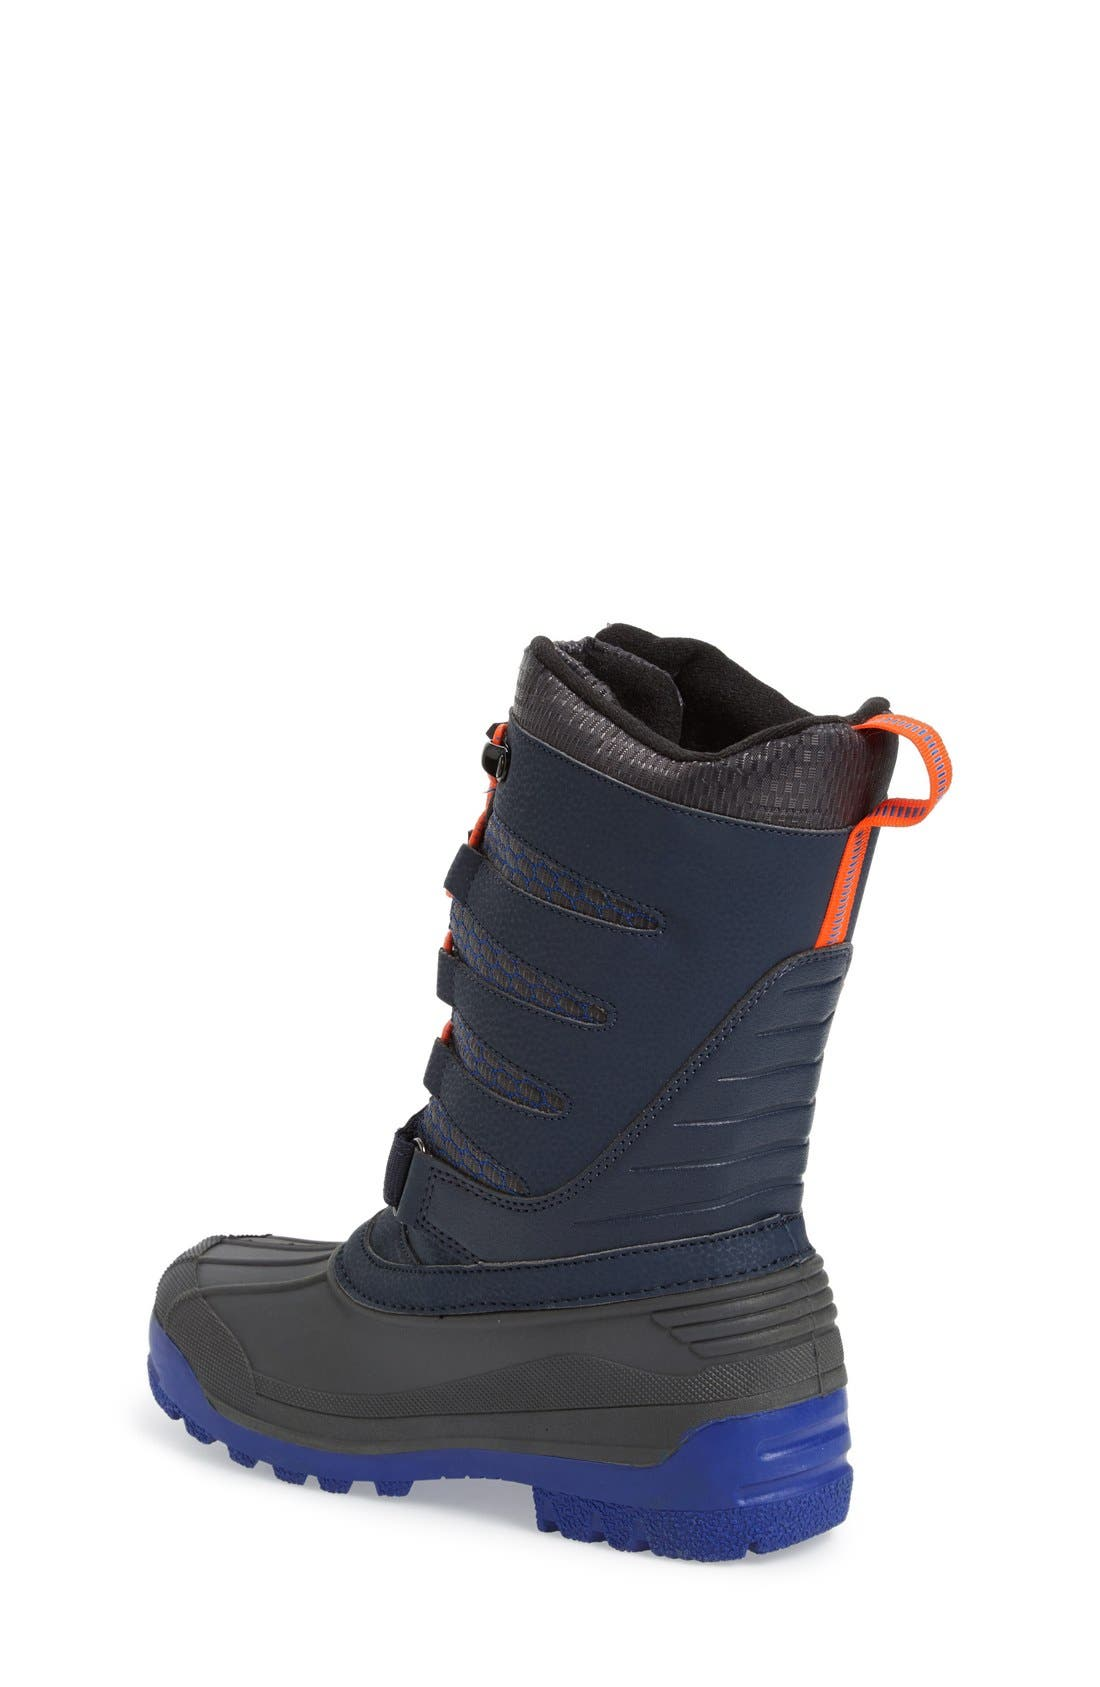 'Venom' Waterproof Insulated Snow Boot,                             Alternate thumbnail 2, color,                             467